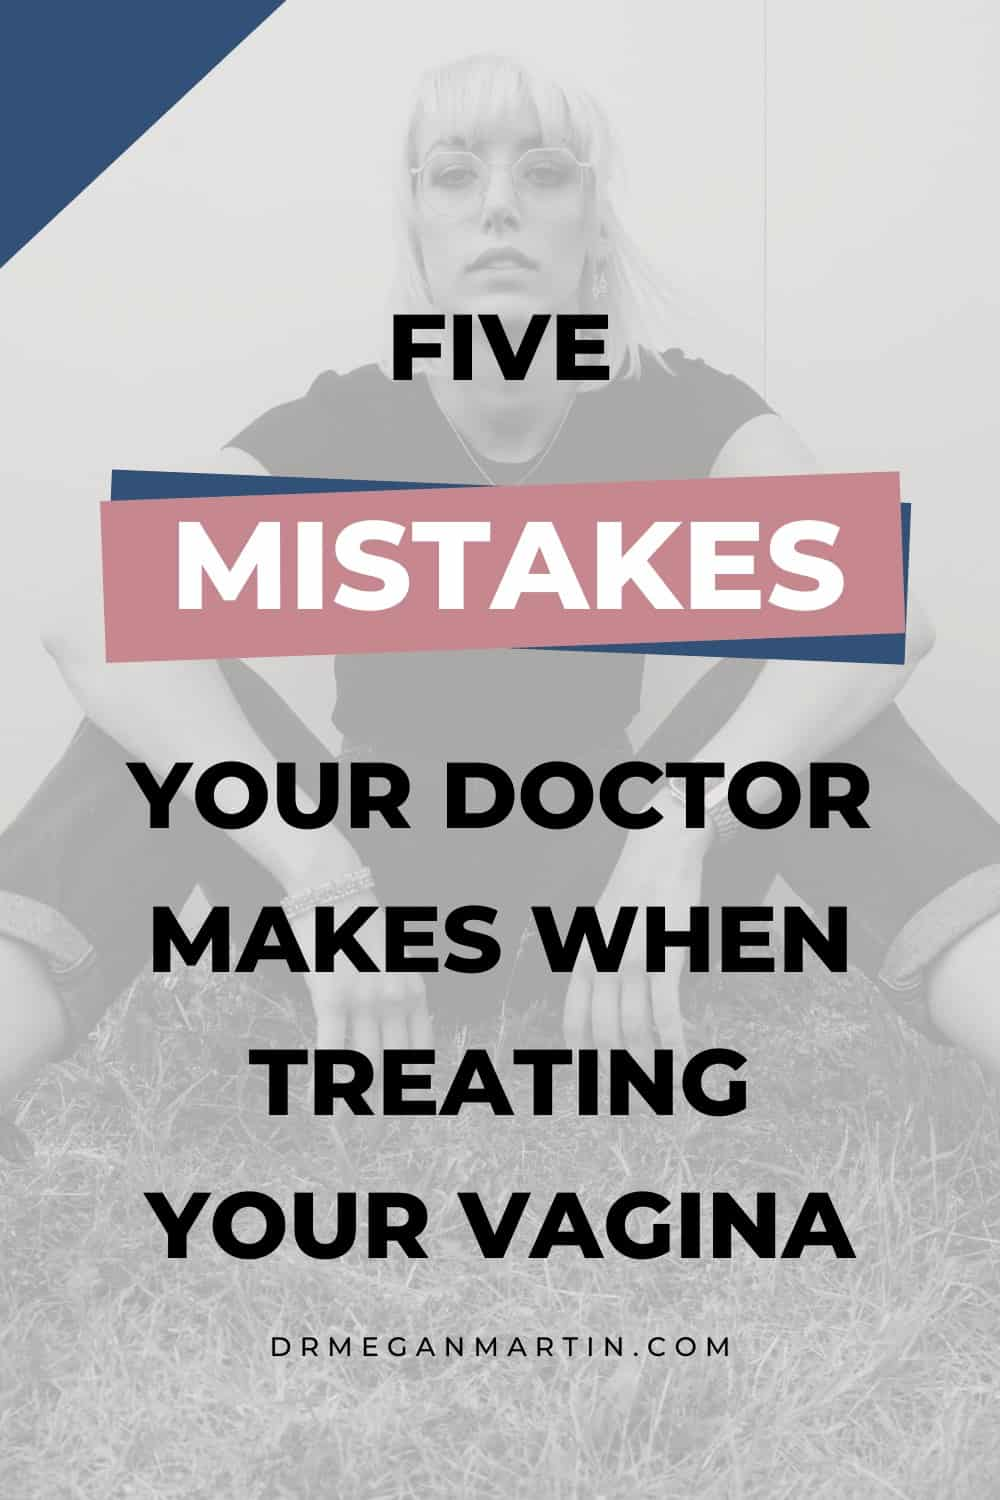 5 mistakes doctors make when treating your vagina